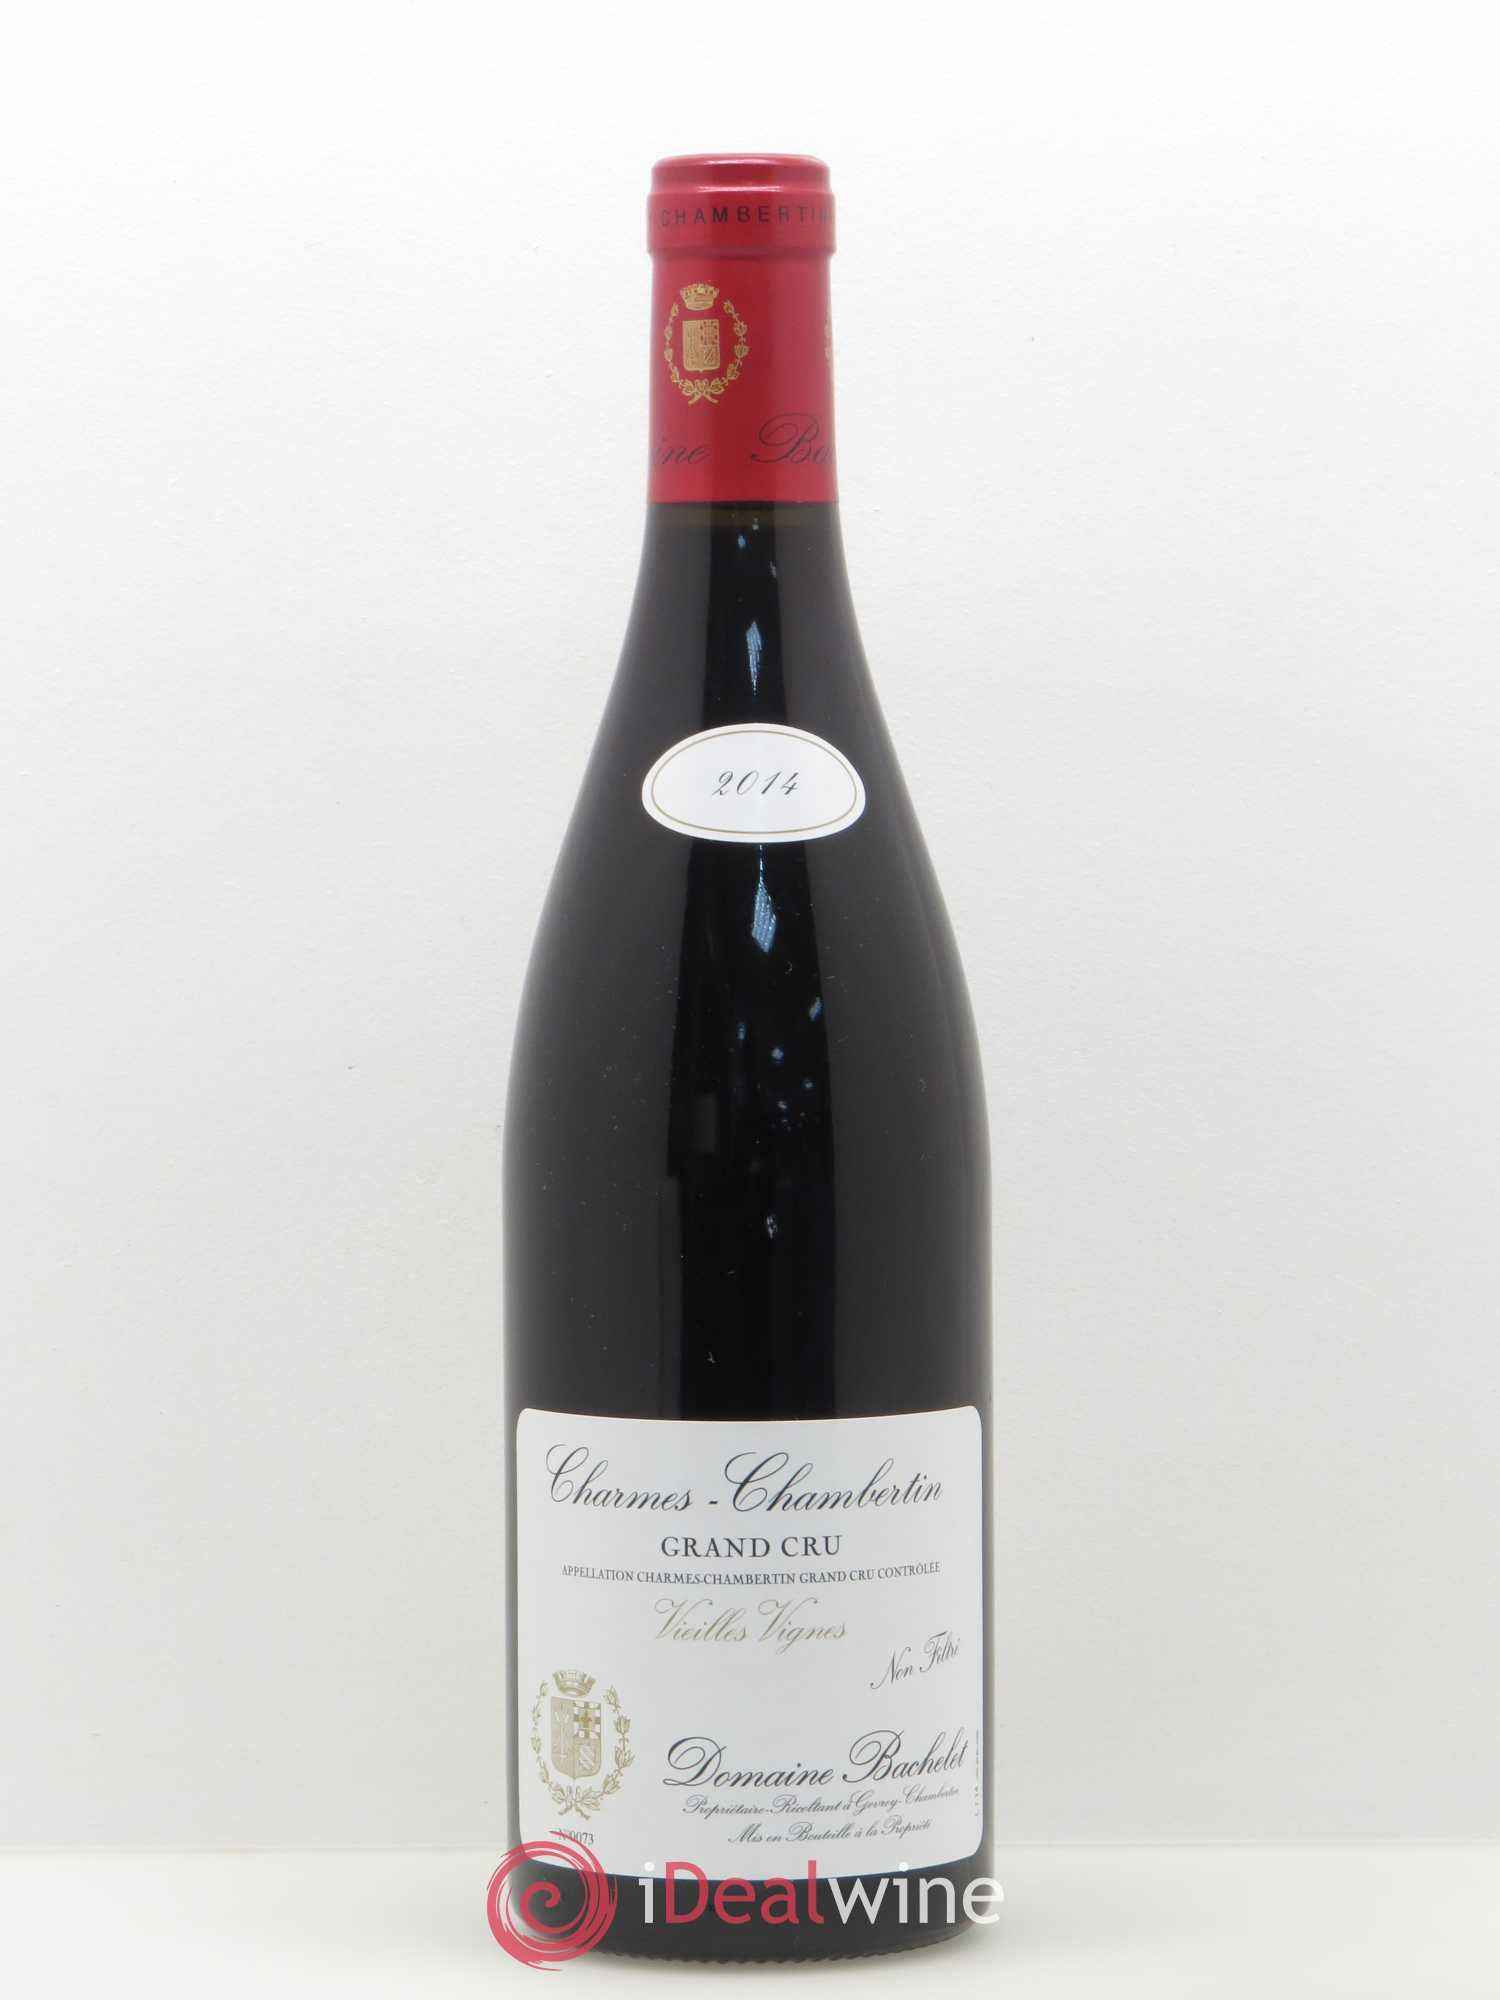 Charmes-Chambertin Grand Cru Denis Bachelet Vieilles Vignes 2014 - Lot of 1 Bottle